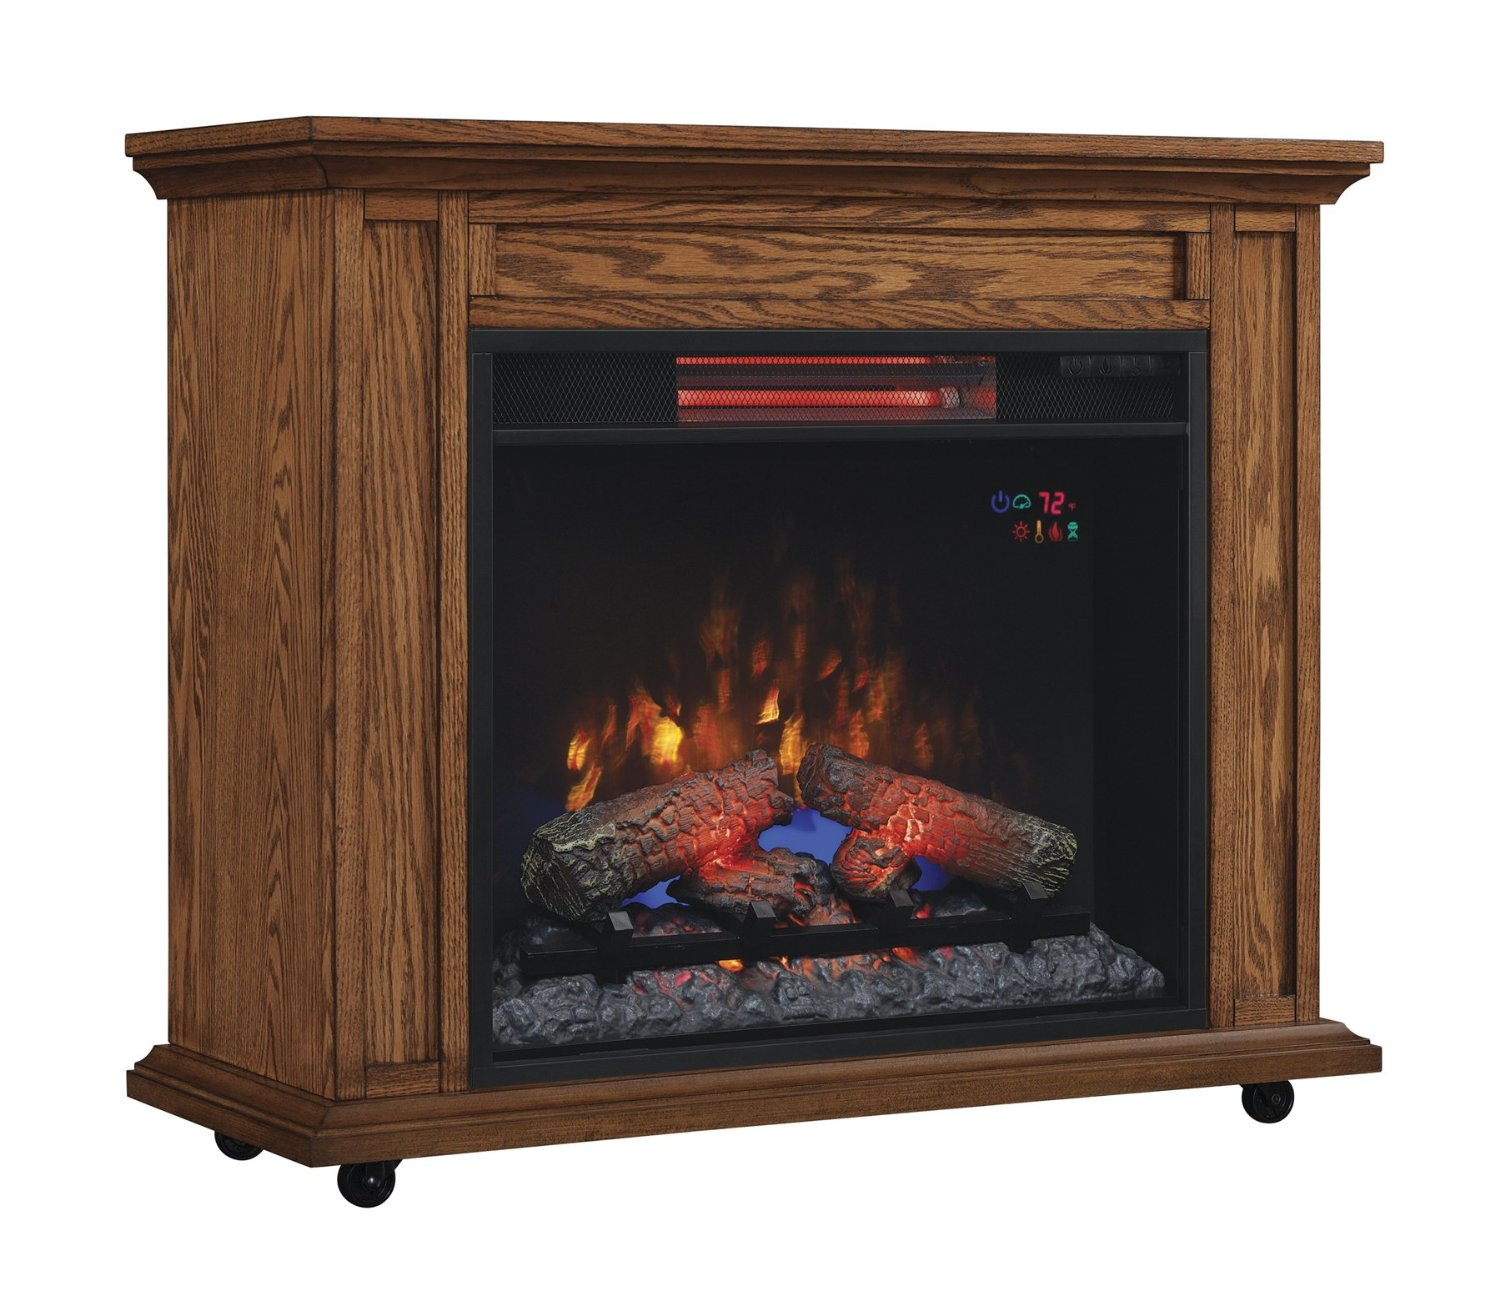 30 40 inch electric fireplaces u0026 electric inserts free shipping